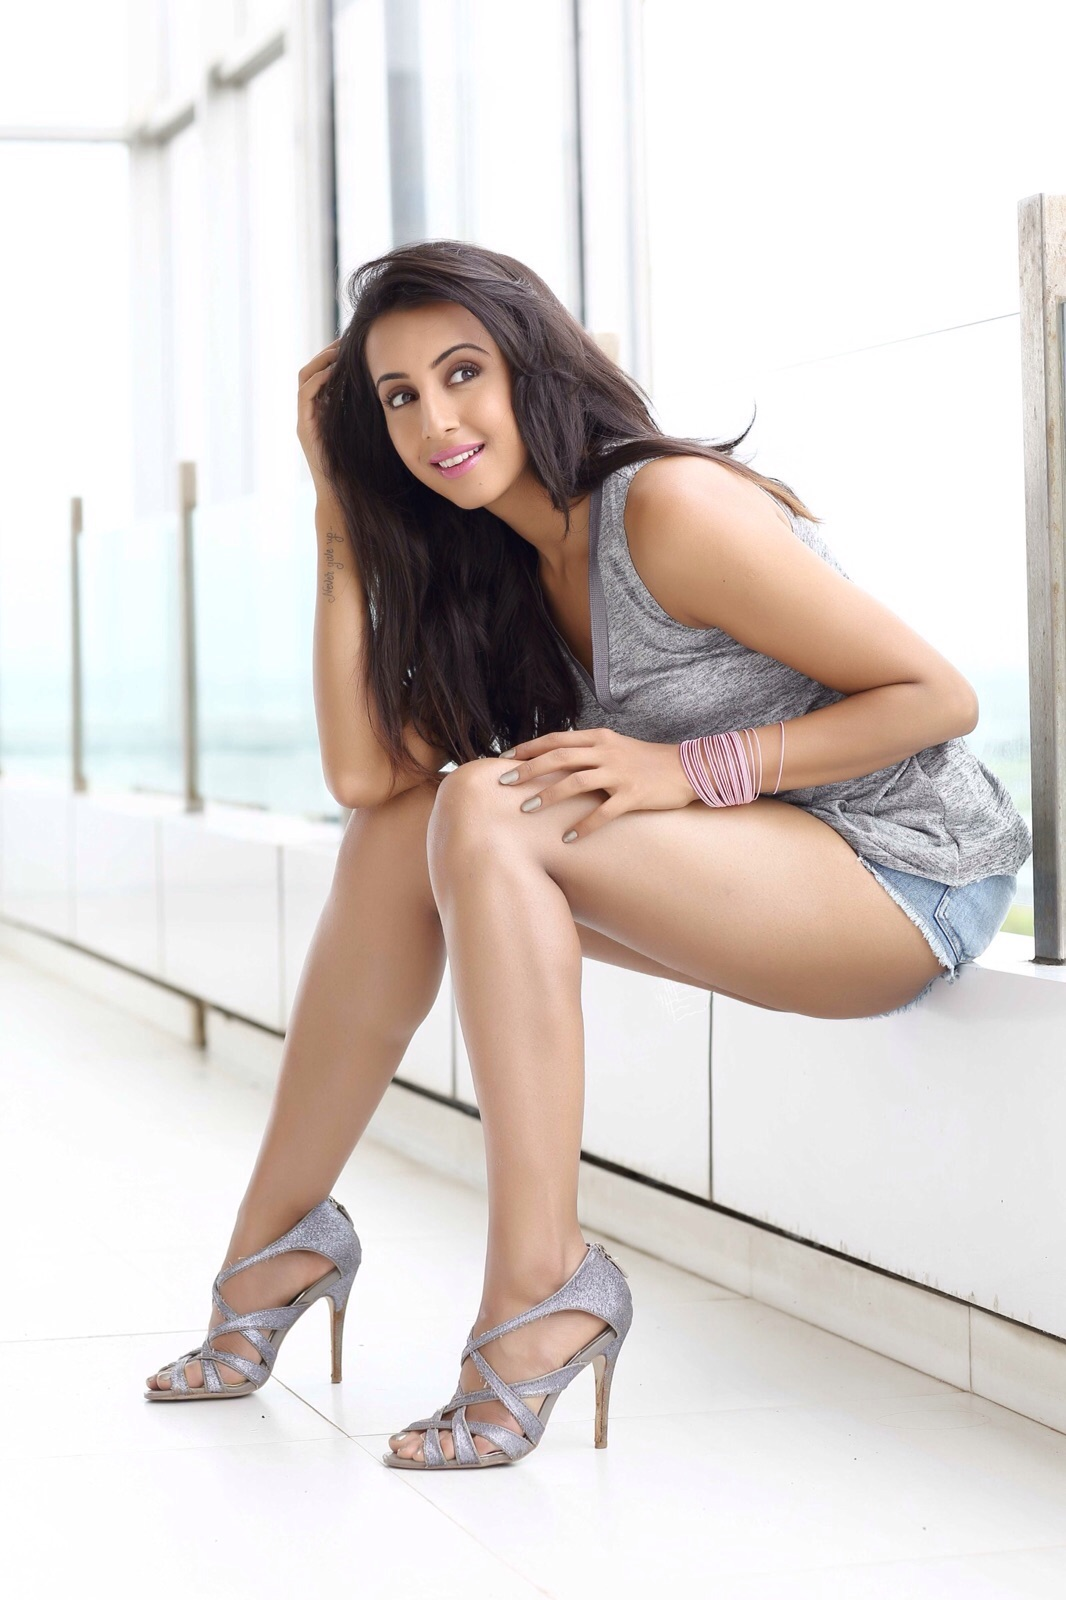 sanjjanna Sanjjanna Sizzles In Super Sexy Outfit | HD Photo Stills Sanjanaa Hot Photo Stills 12